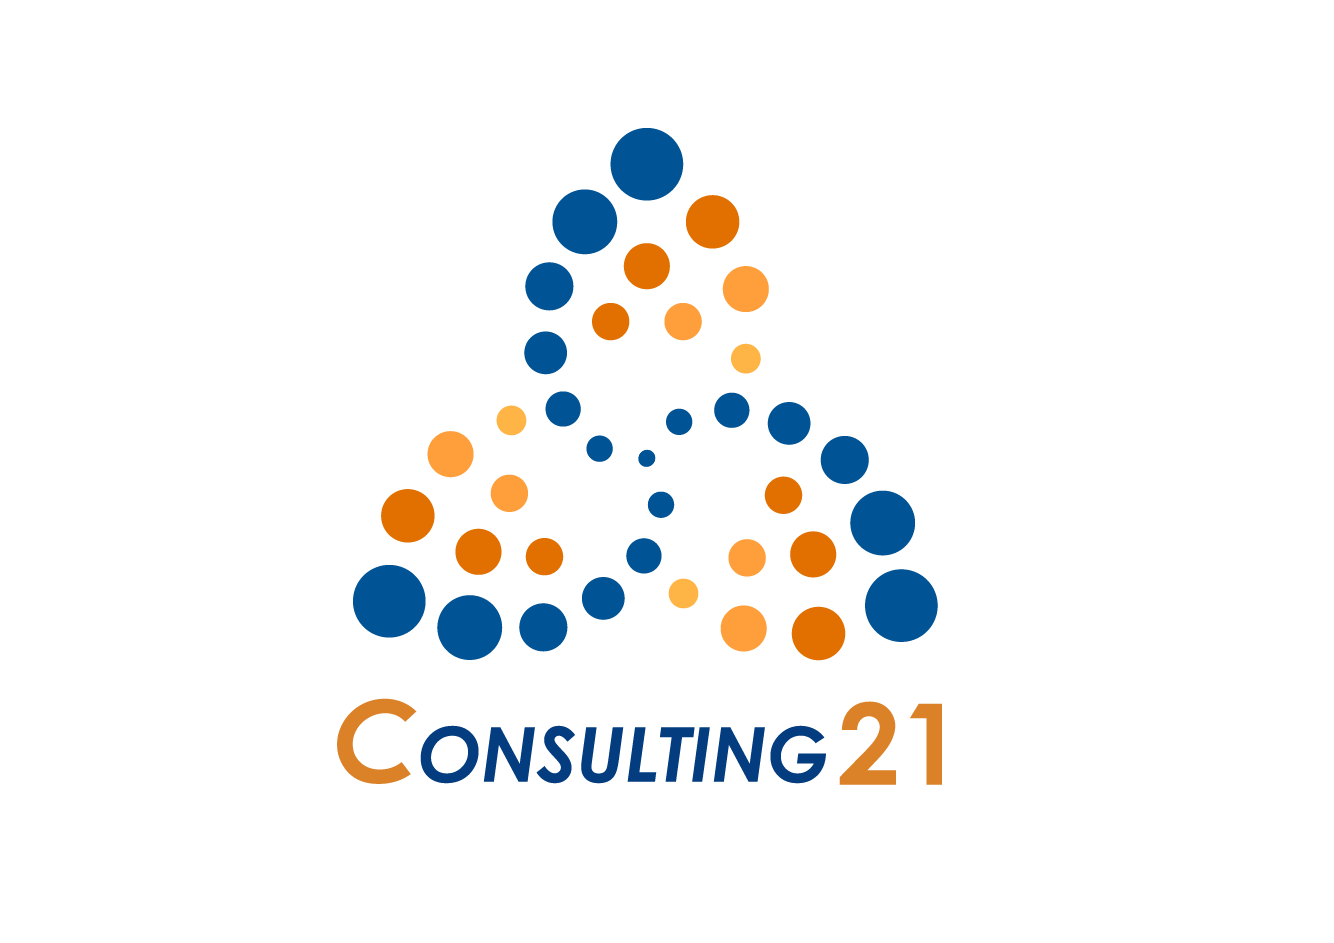 Consulting 21